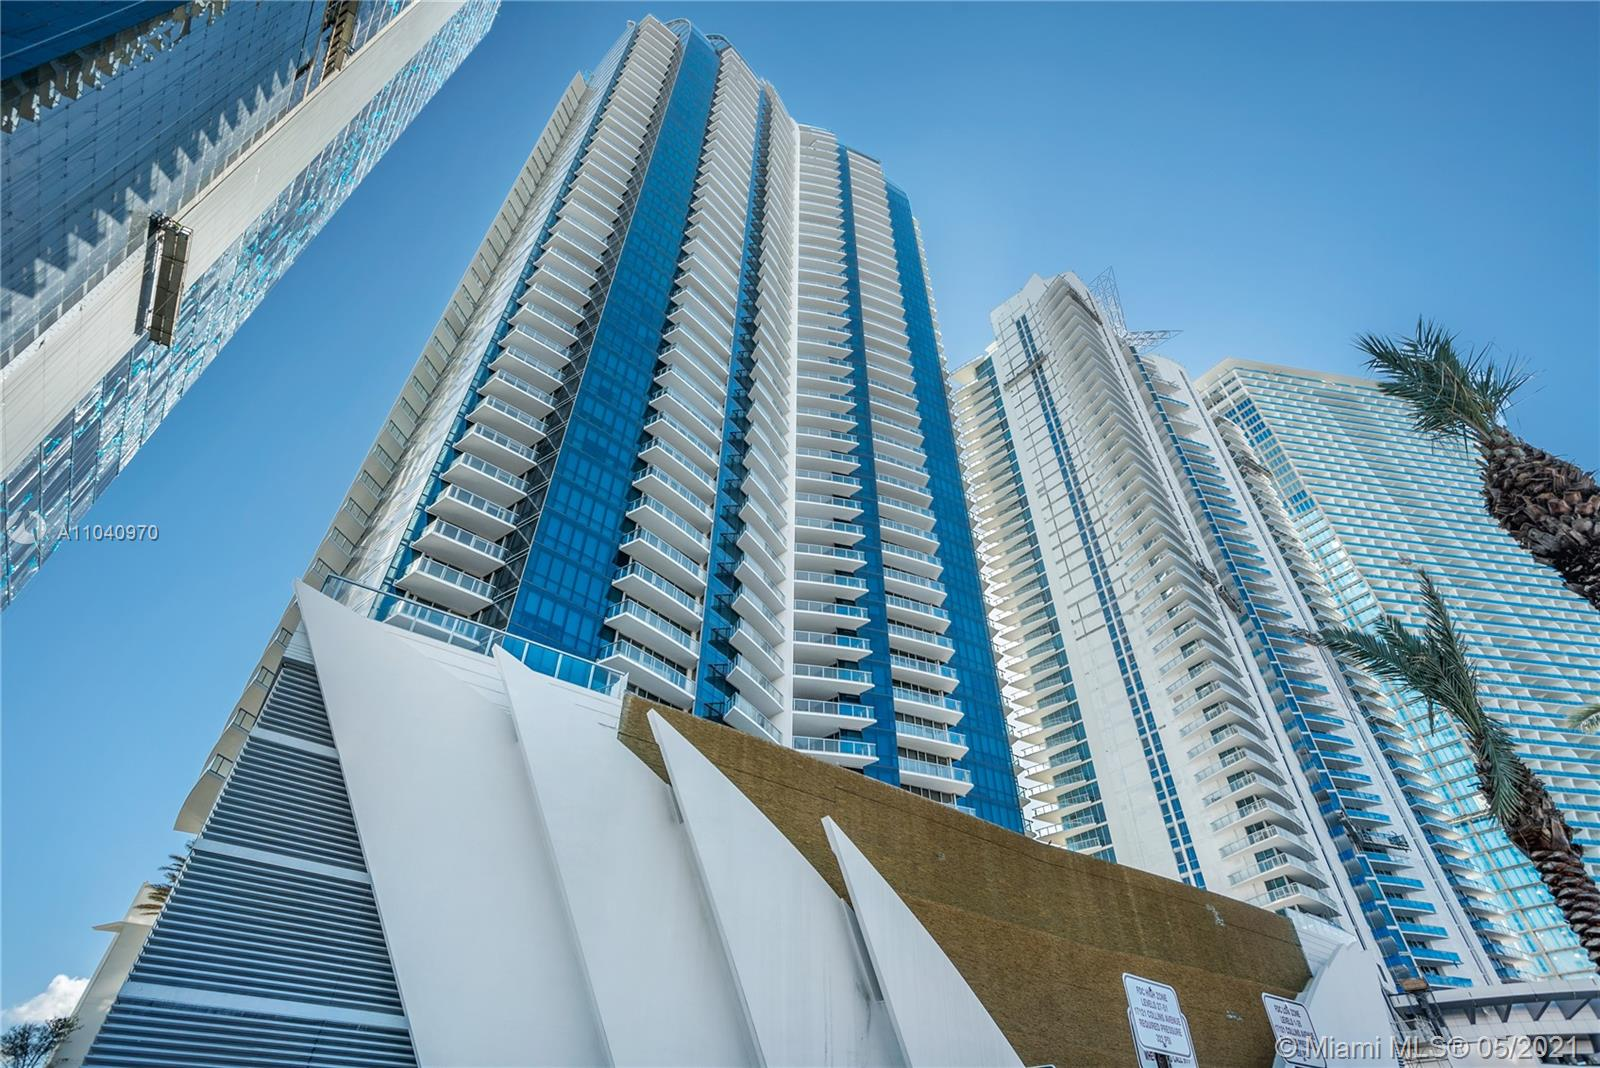 17121  Collins Ave #2703 For Sale A11040970, FL